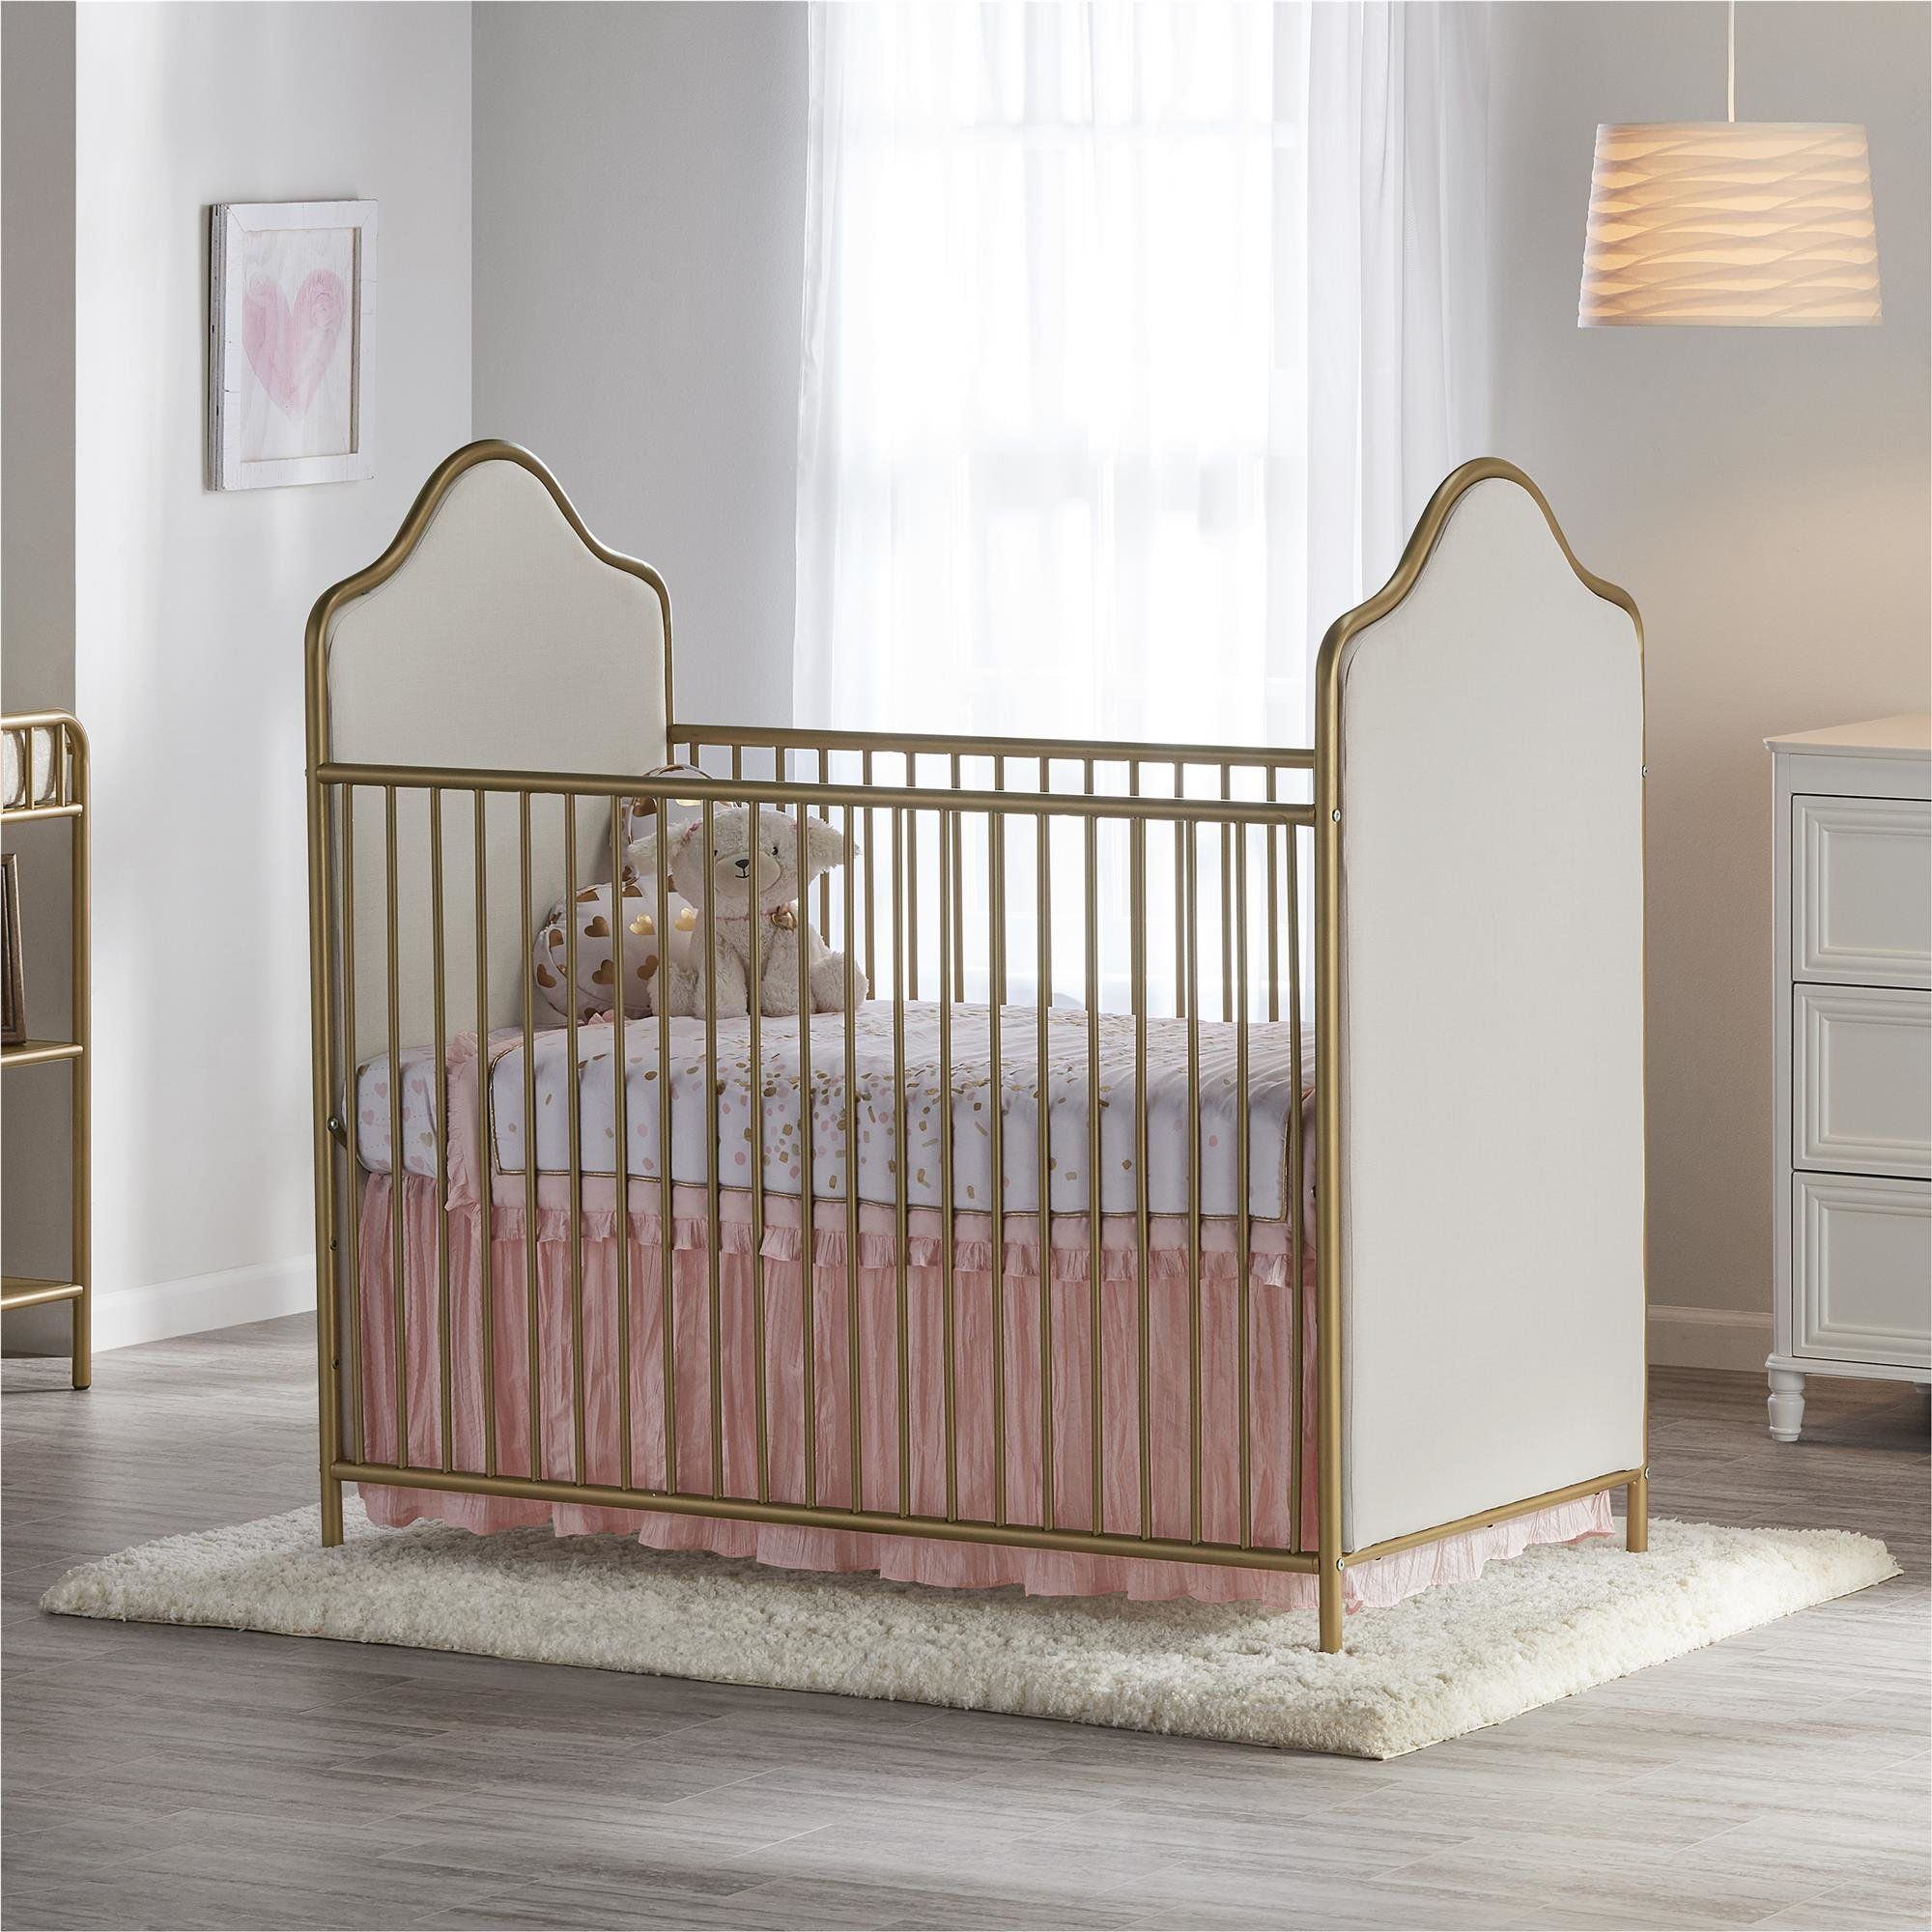 nursery, wooden floor, crib with golden fences, white headboard, white wall, white rug